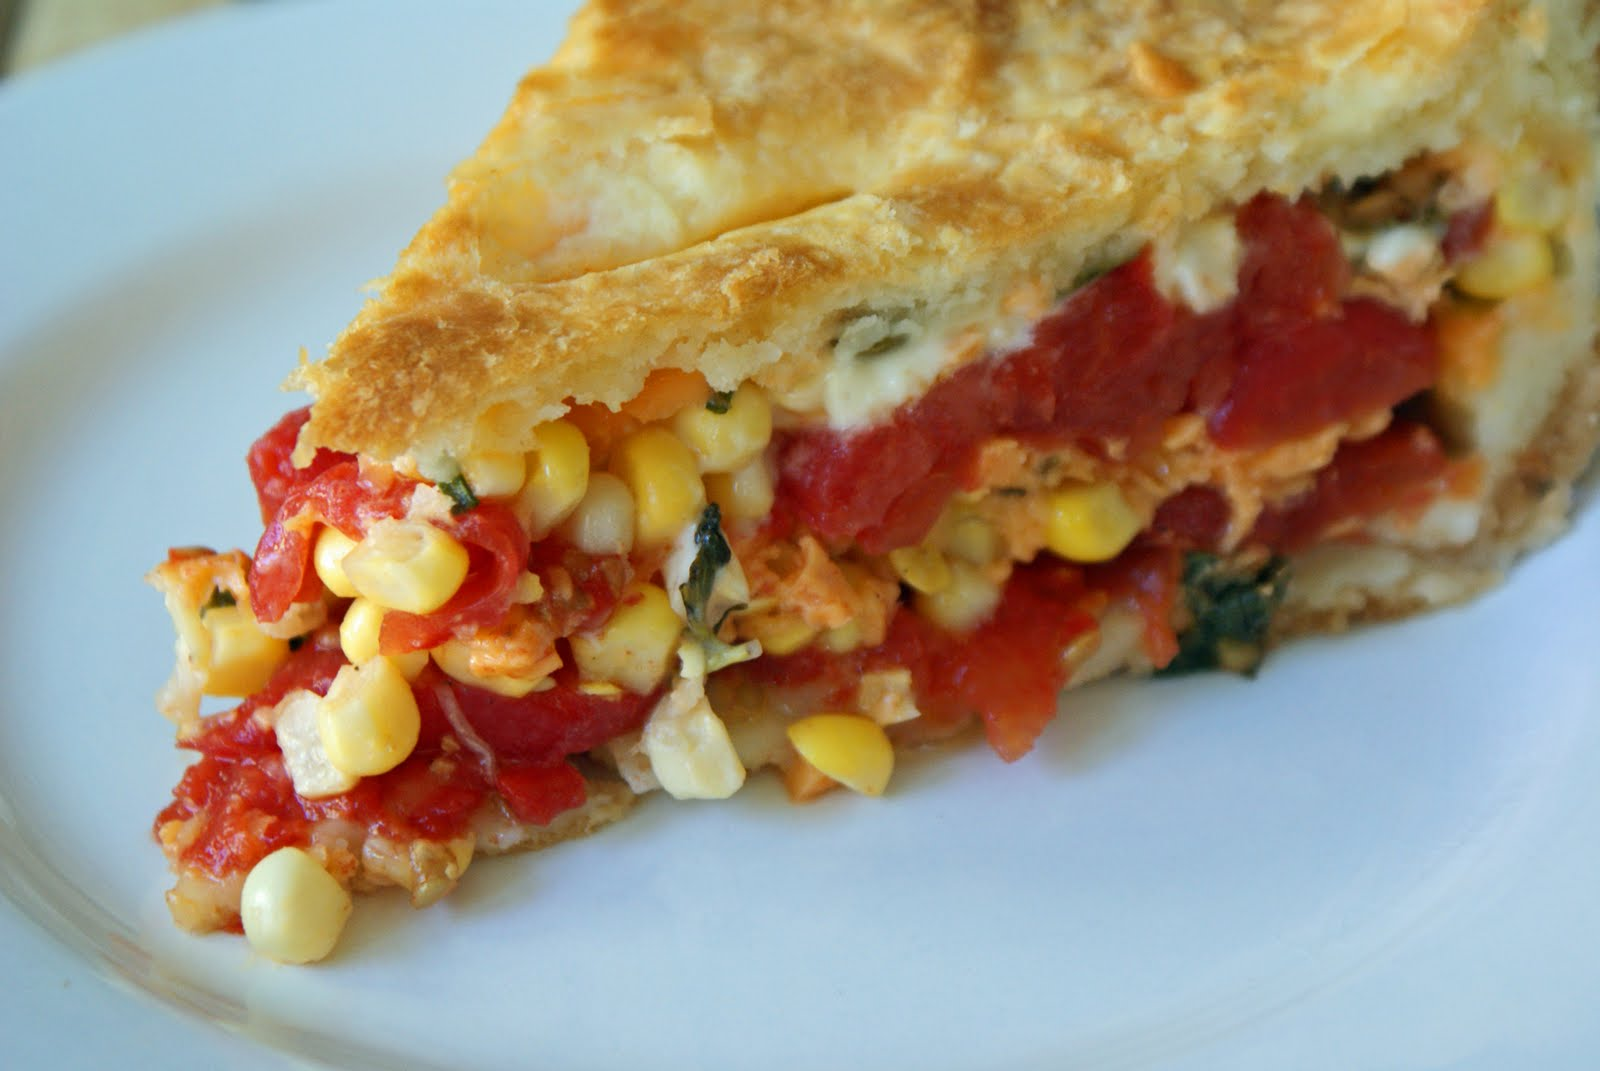 Tomato-Corn Pie with Biscuit Crust - Dinner With Julie